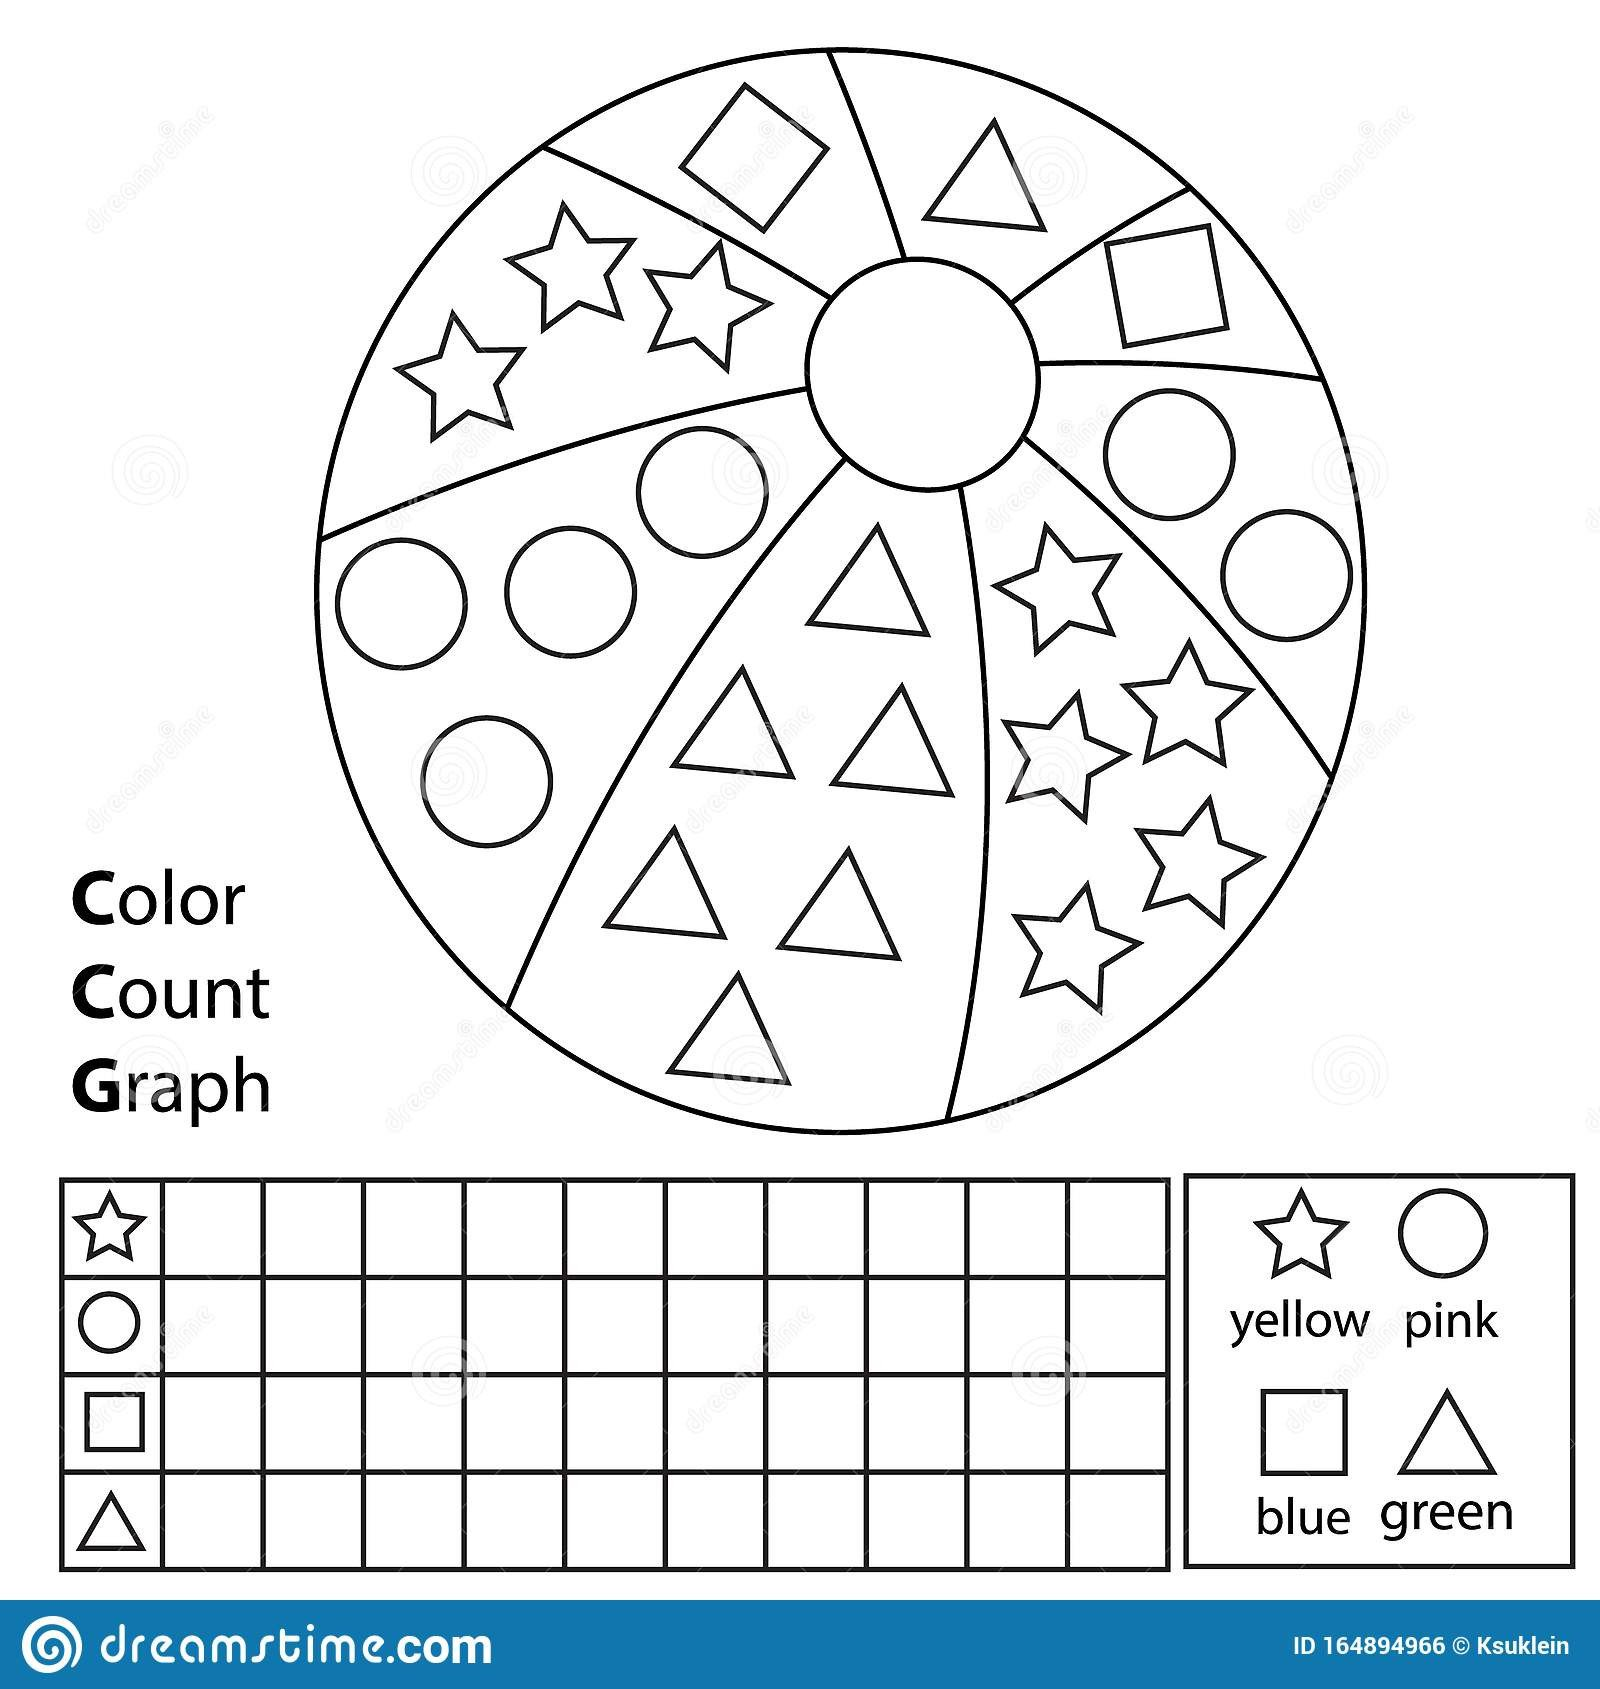 Hexagon Worksheet for Kindergarten Color Worksheets for toddlers Count Graph Educational